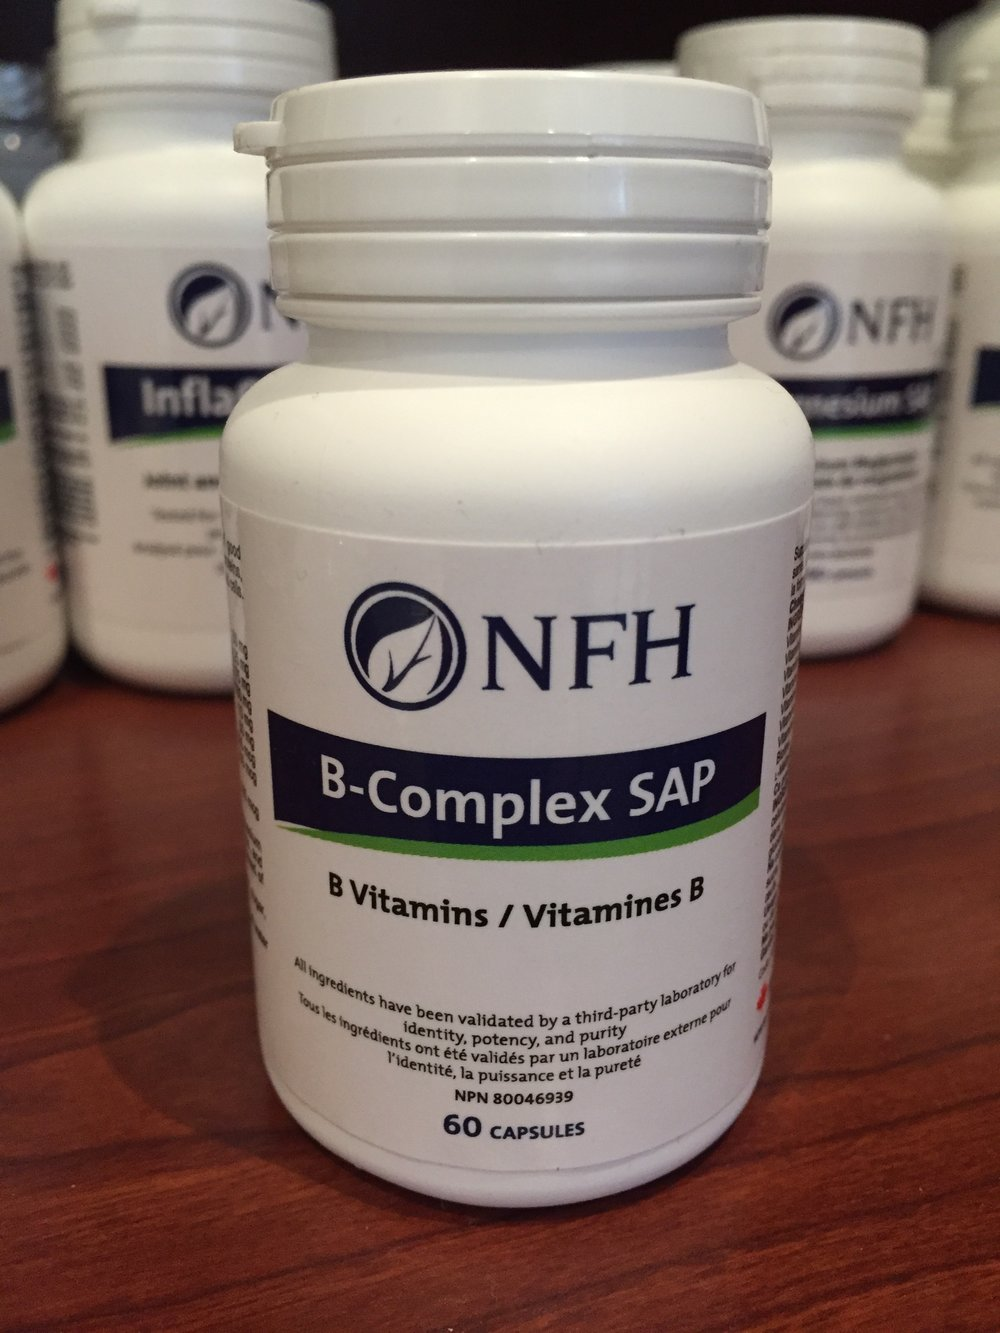 Quality B-Complex: - I use a brand called NFH for best results! But if you're following this beginners guide, you should be able to make some great to your supplement regime on your own. If you can't find what you're looking for, you can make an account through my online dispensary or contact me directly.